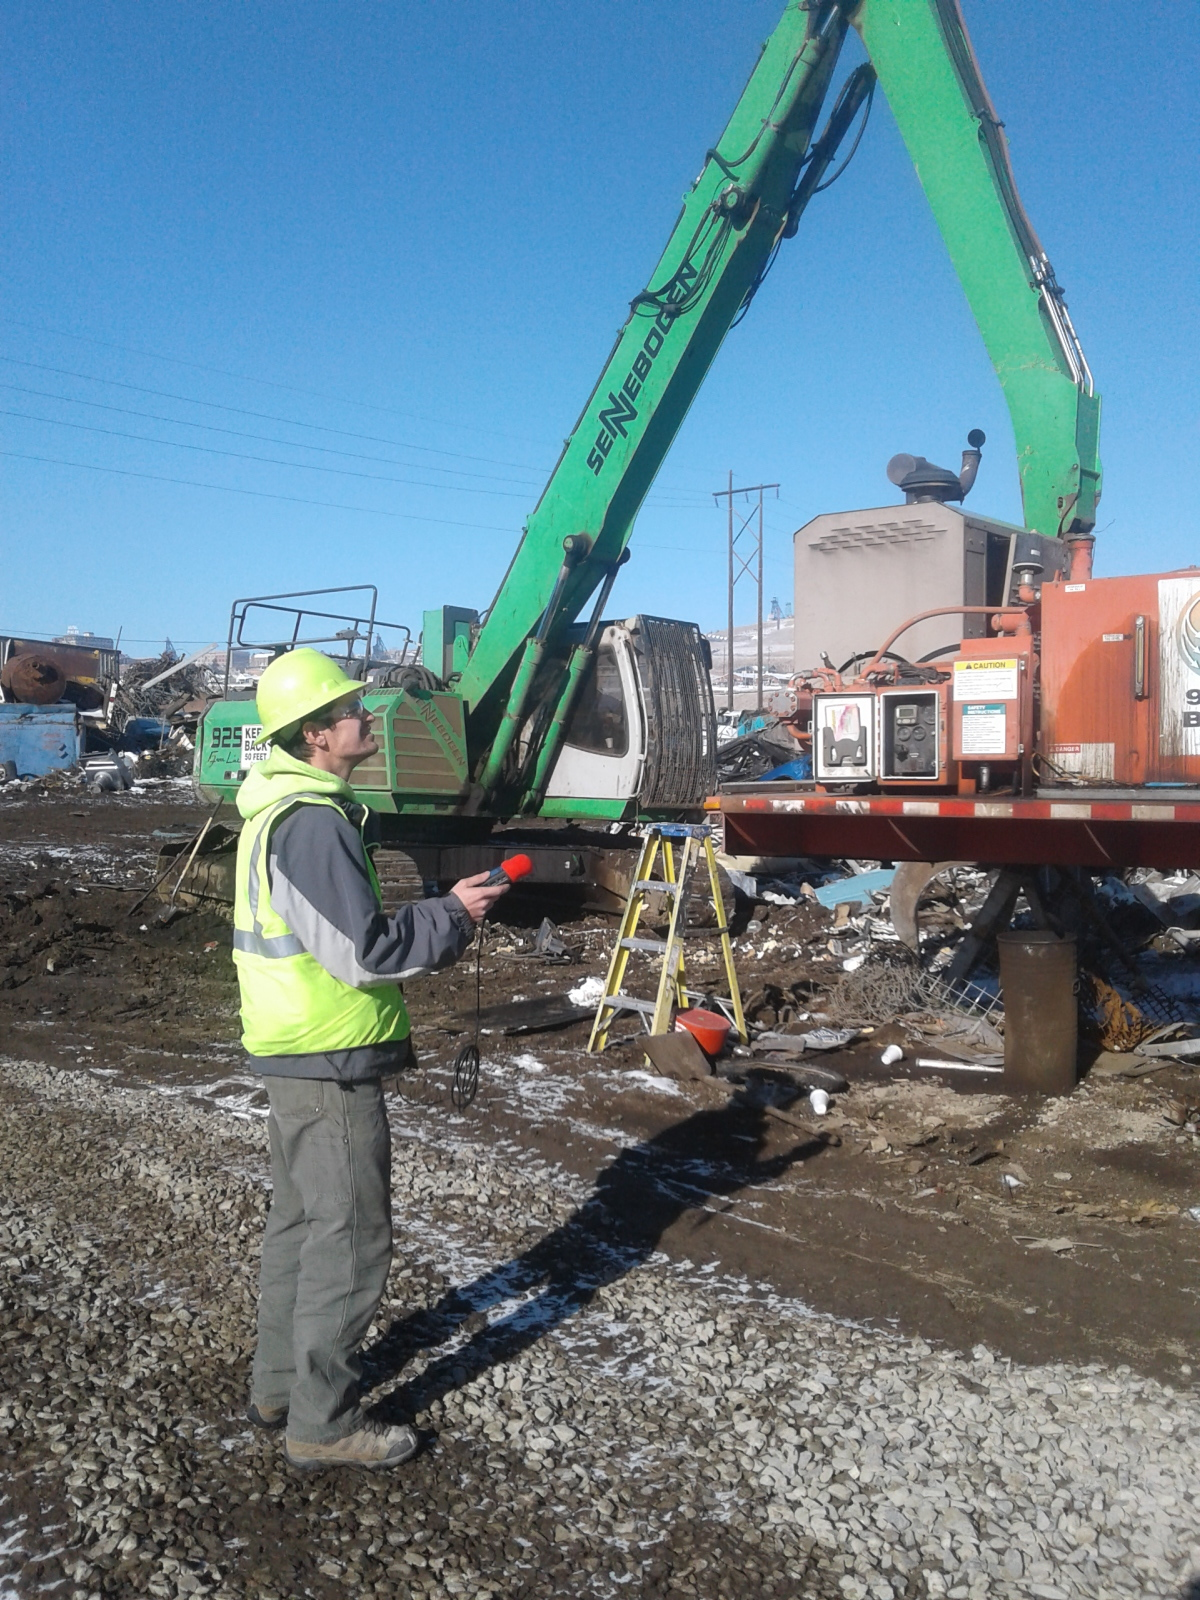 Clark Grant recording the crusher at Pacific Steel in Butte